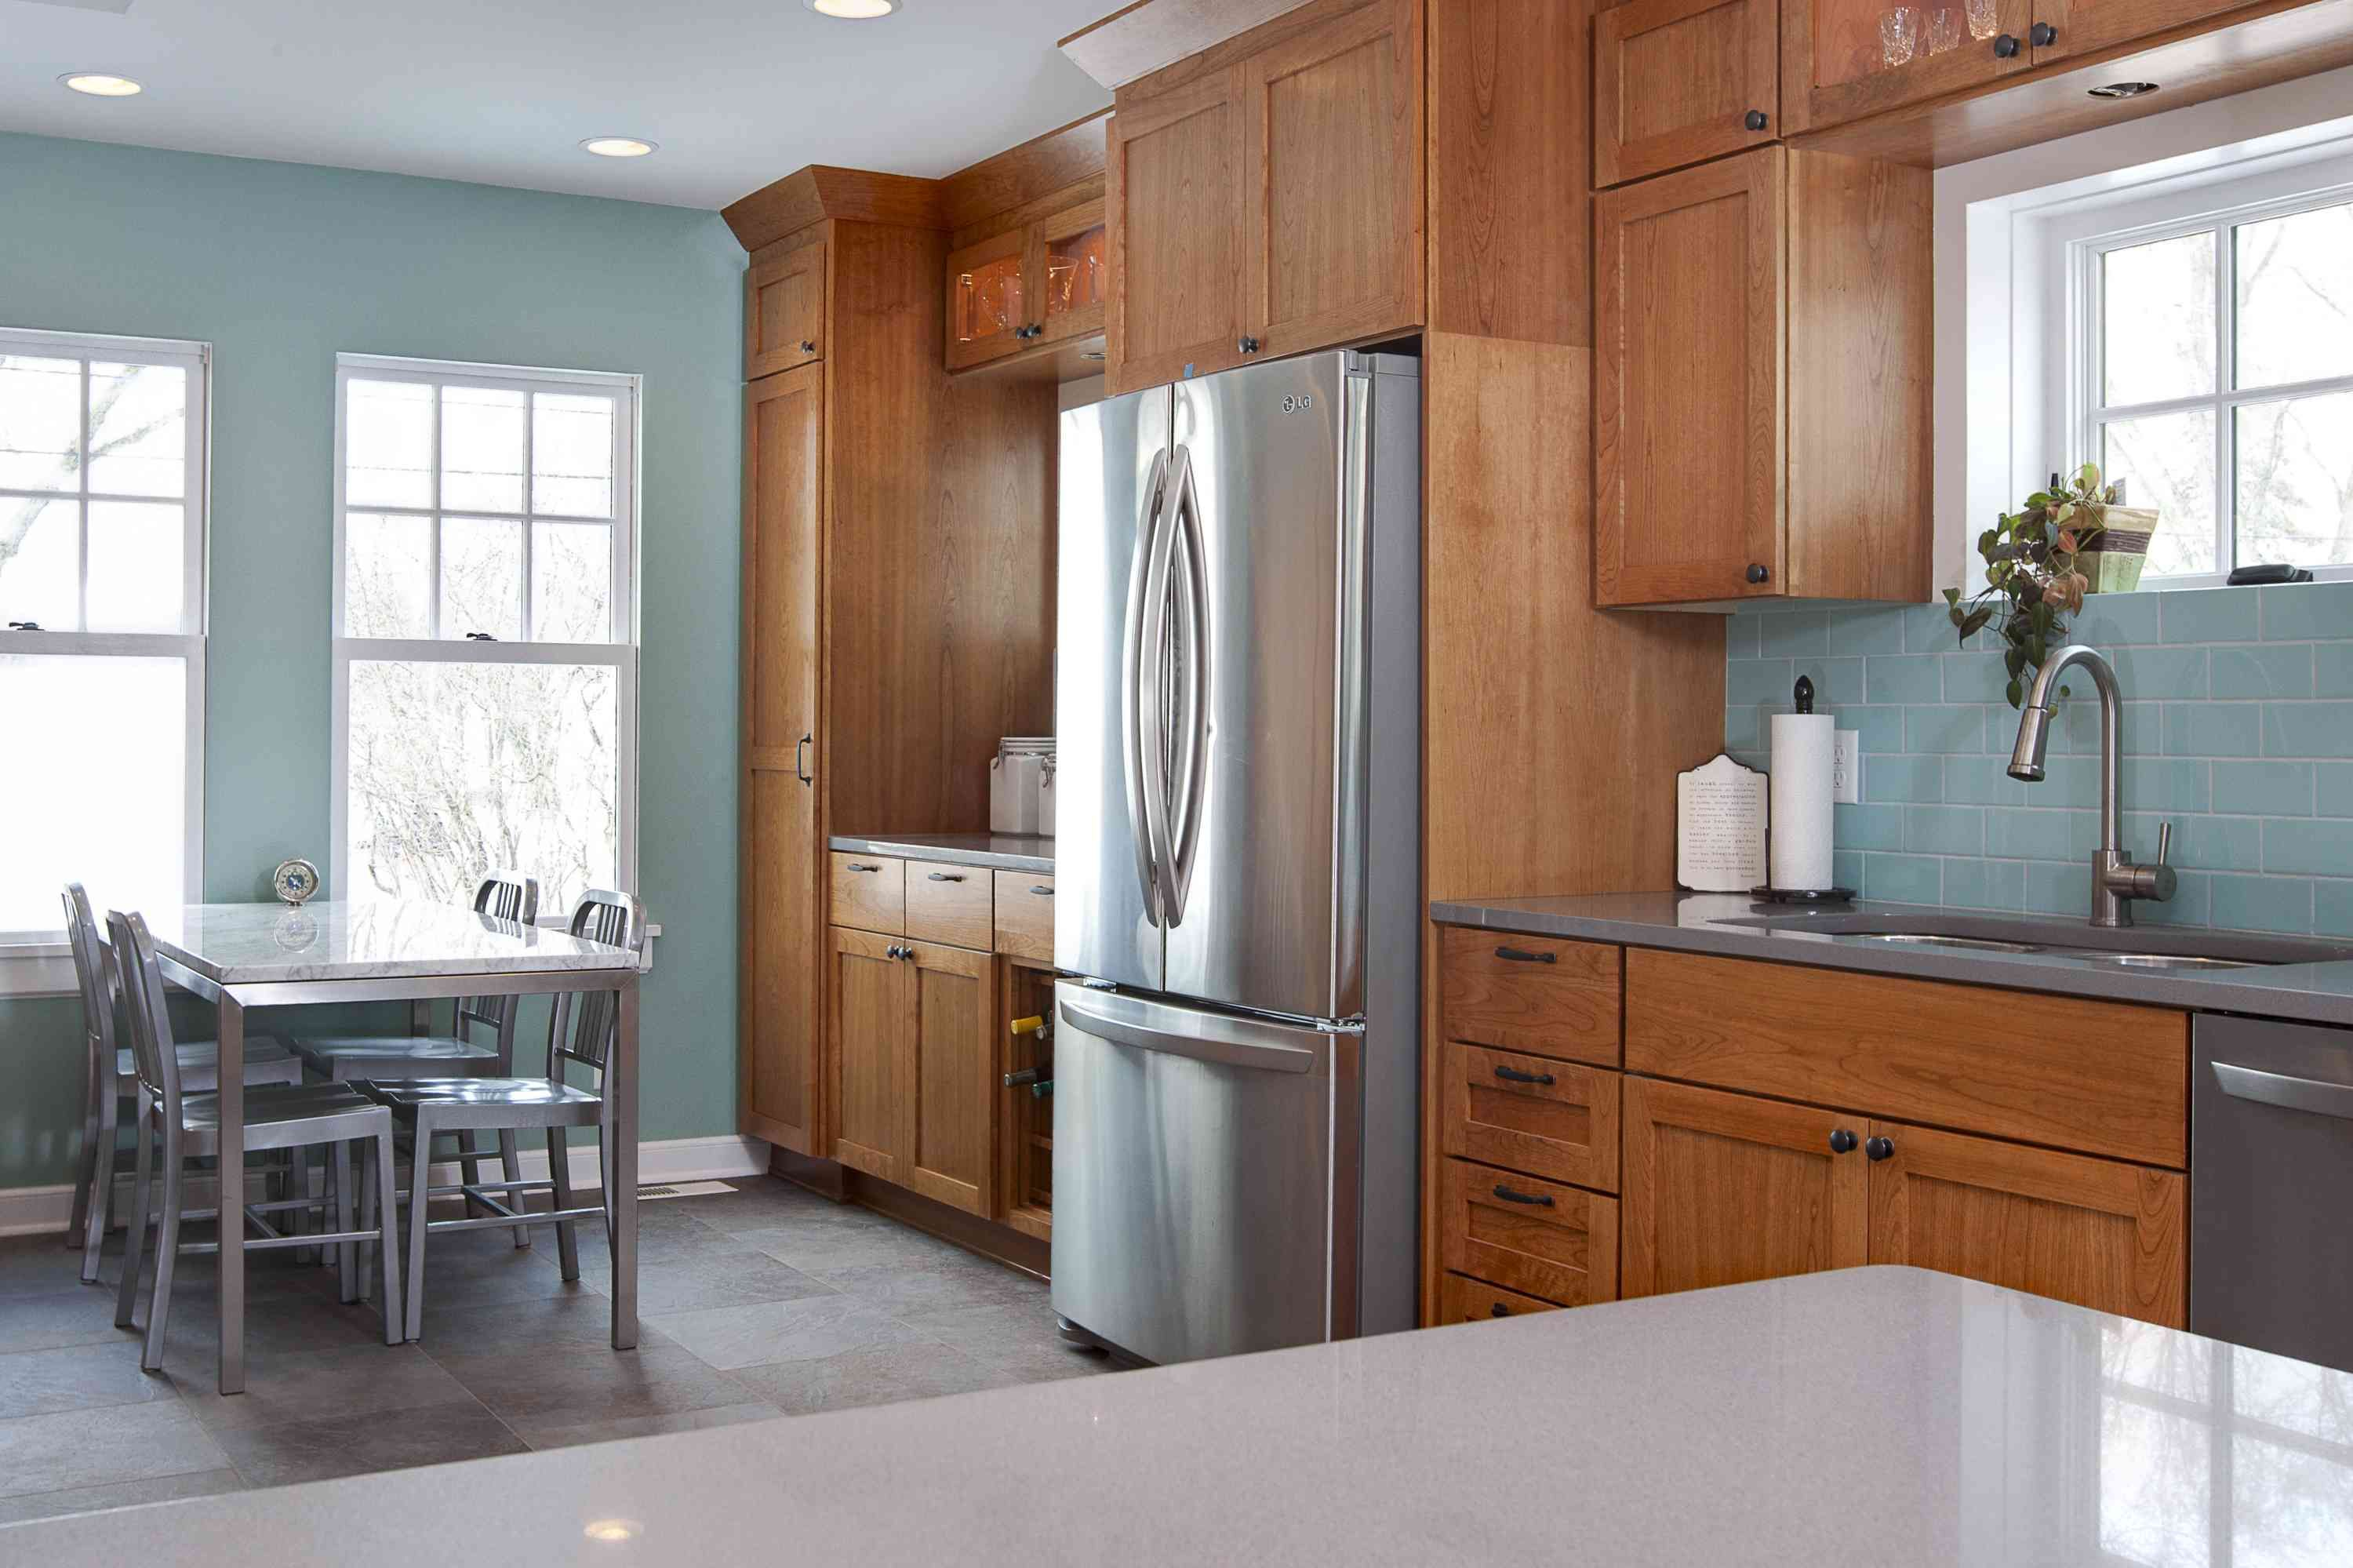 If You Have Wood Stained Cabinets And You Install A Blue Glass Backsplash That Should Be The Colou With Images Kitchen Wall Colors Oak Kitchen Cabinets Honey Oak Cabinets